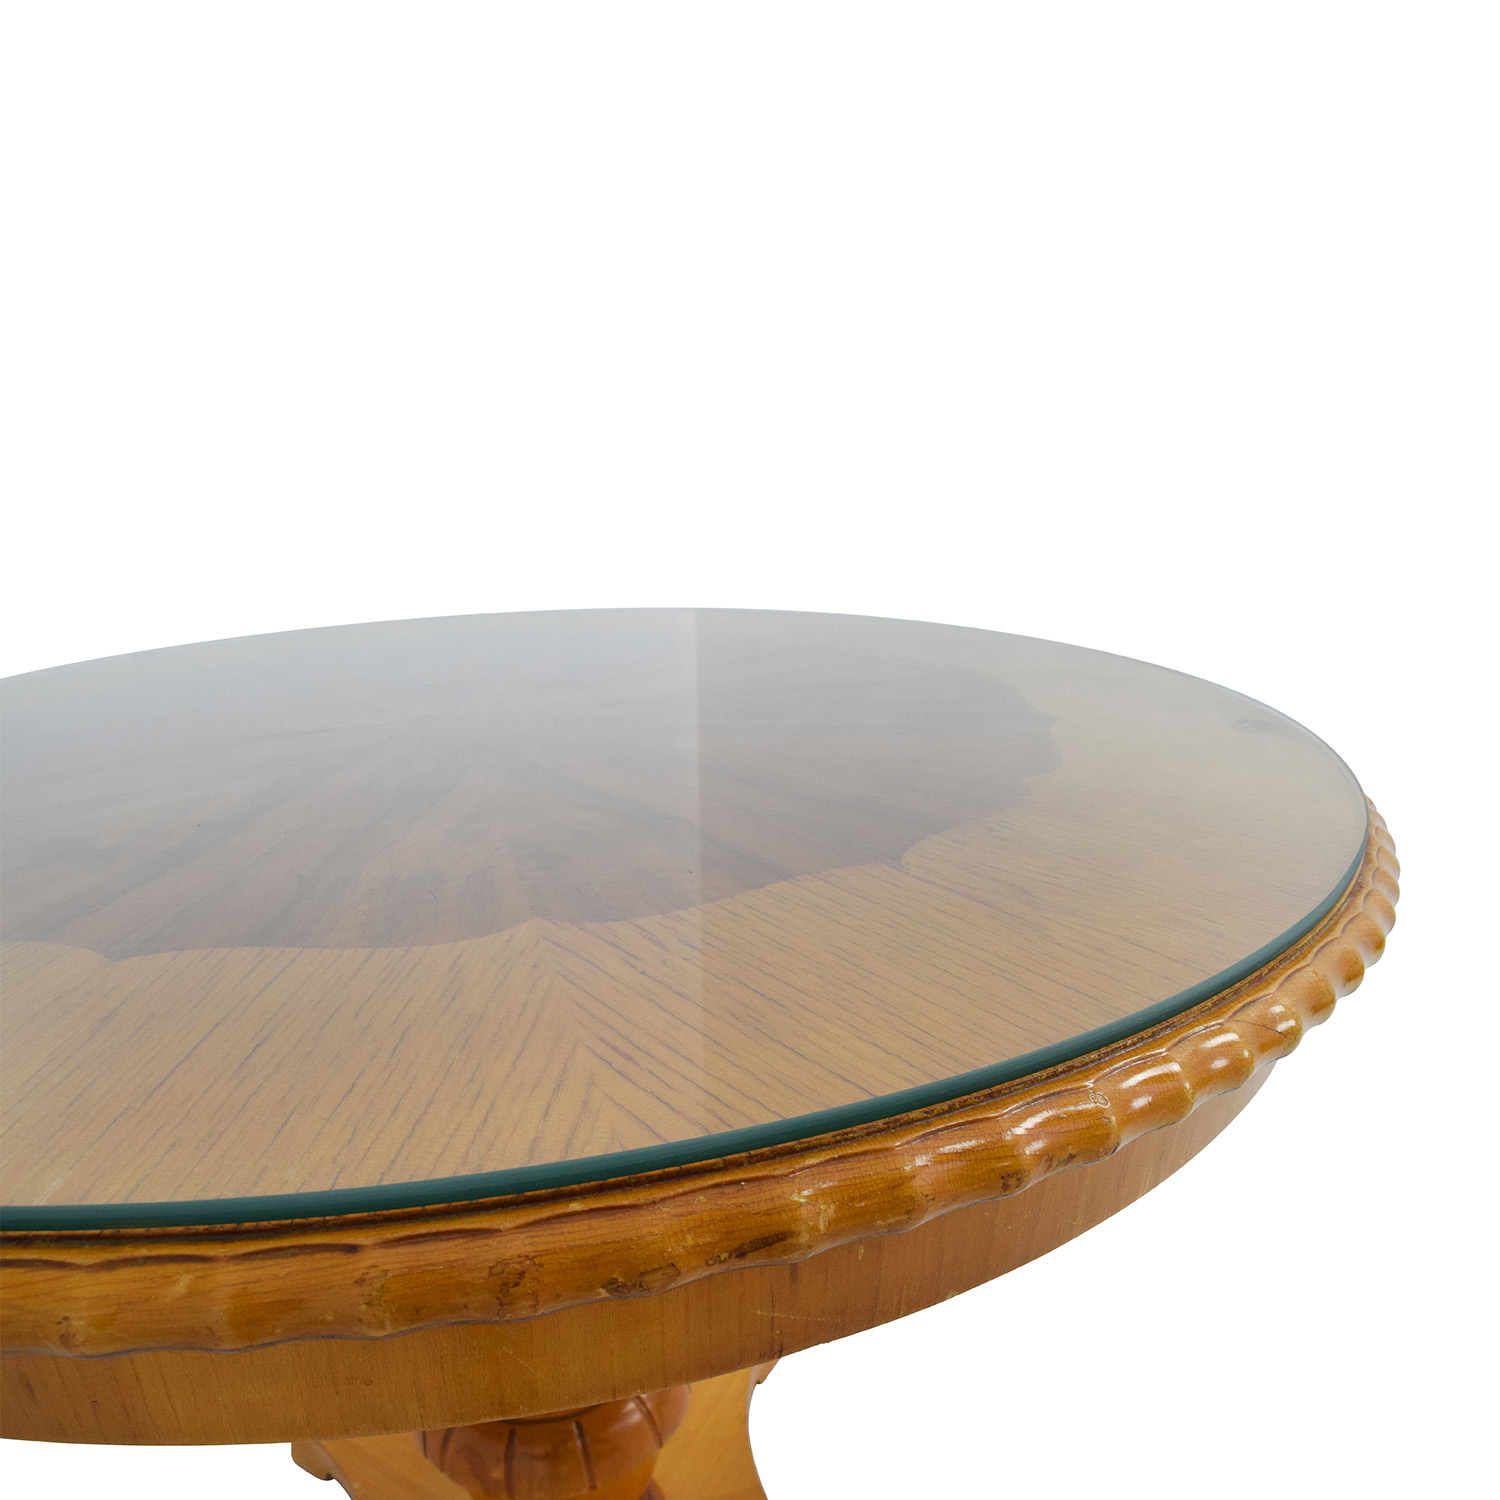 Antique Round Wood Dining Table with Glass Top coupon